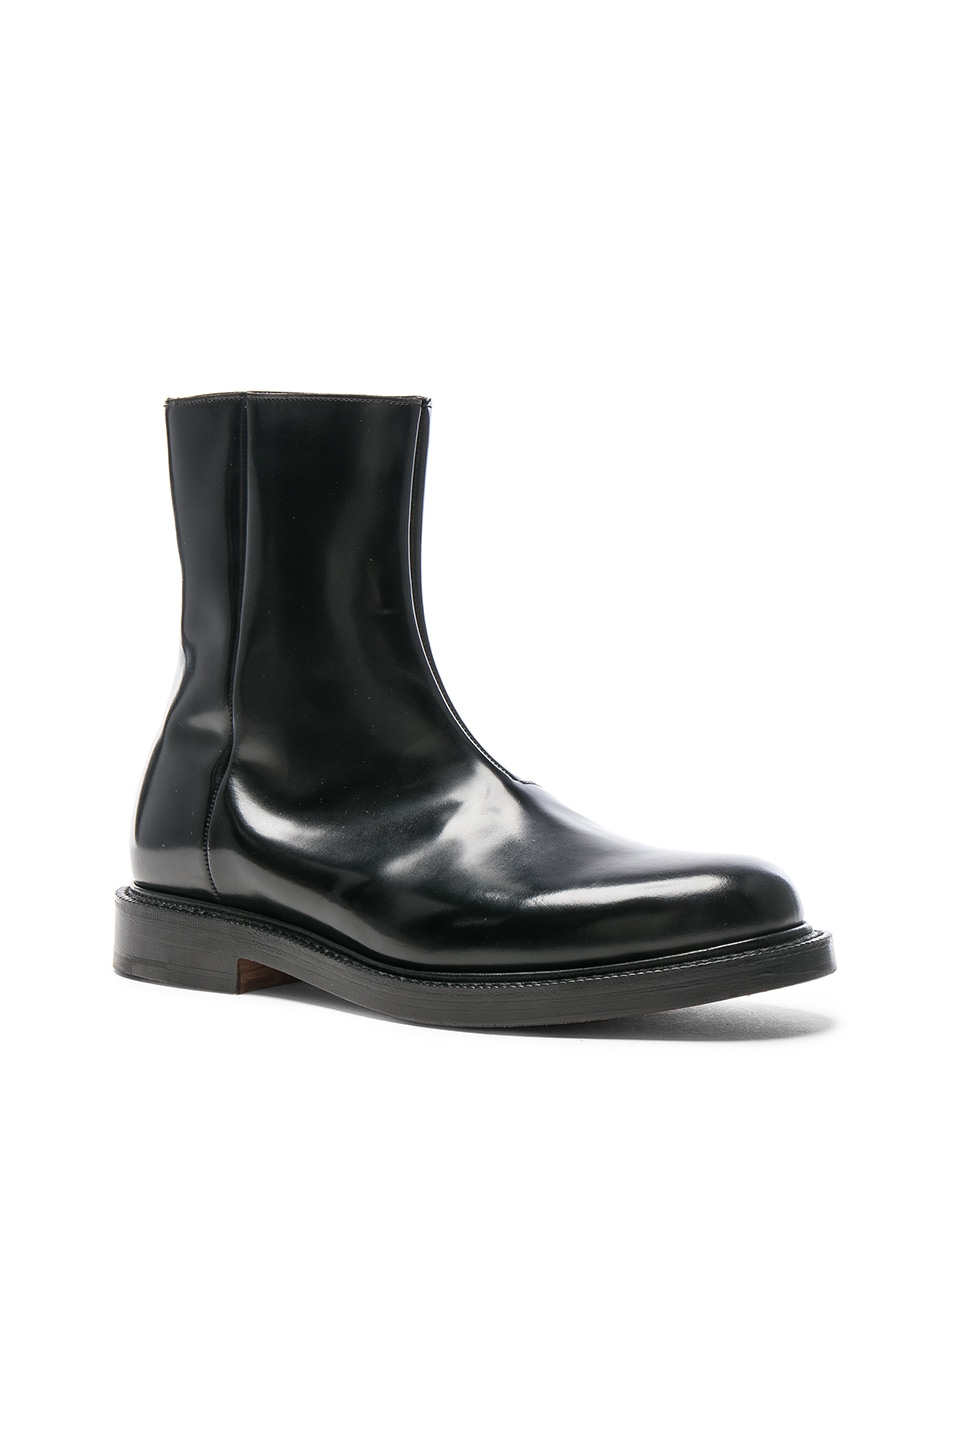 Image 1 of VETEMENTS x Church's Logo Leather Ankle Boots in Black